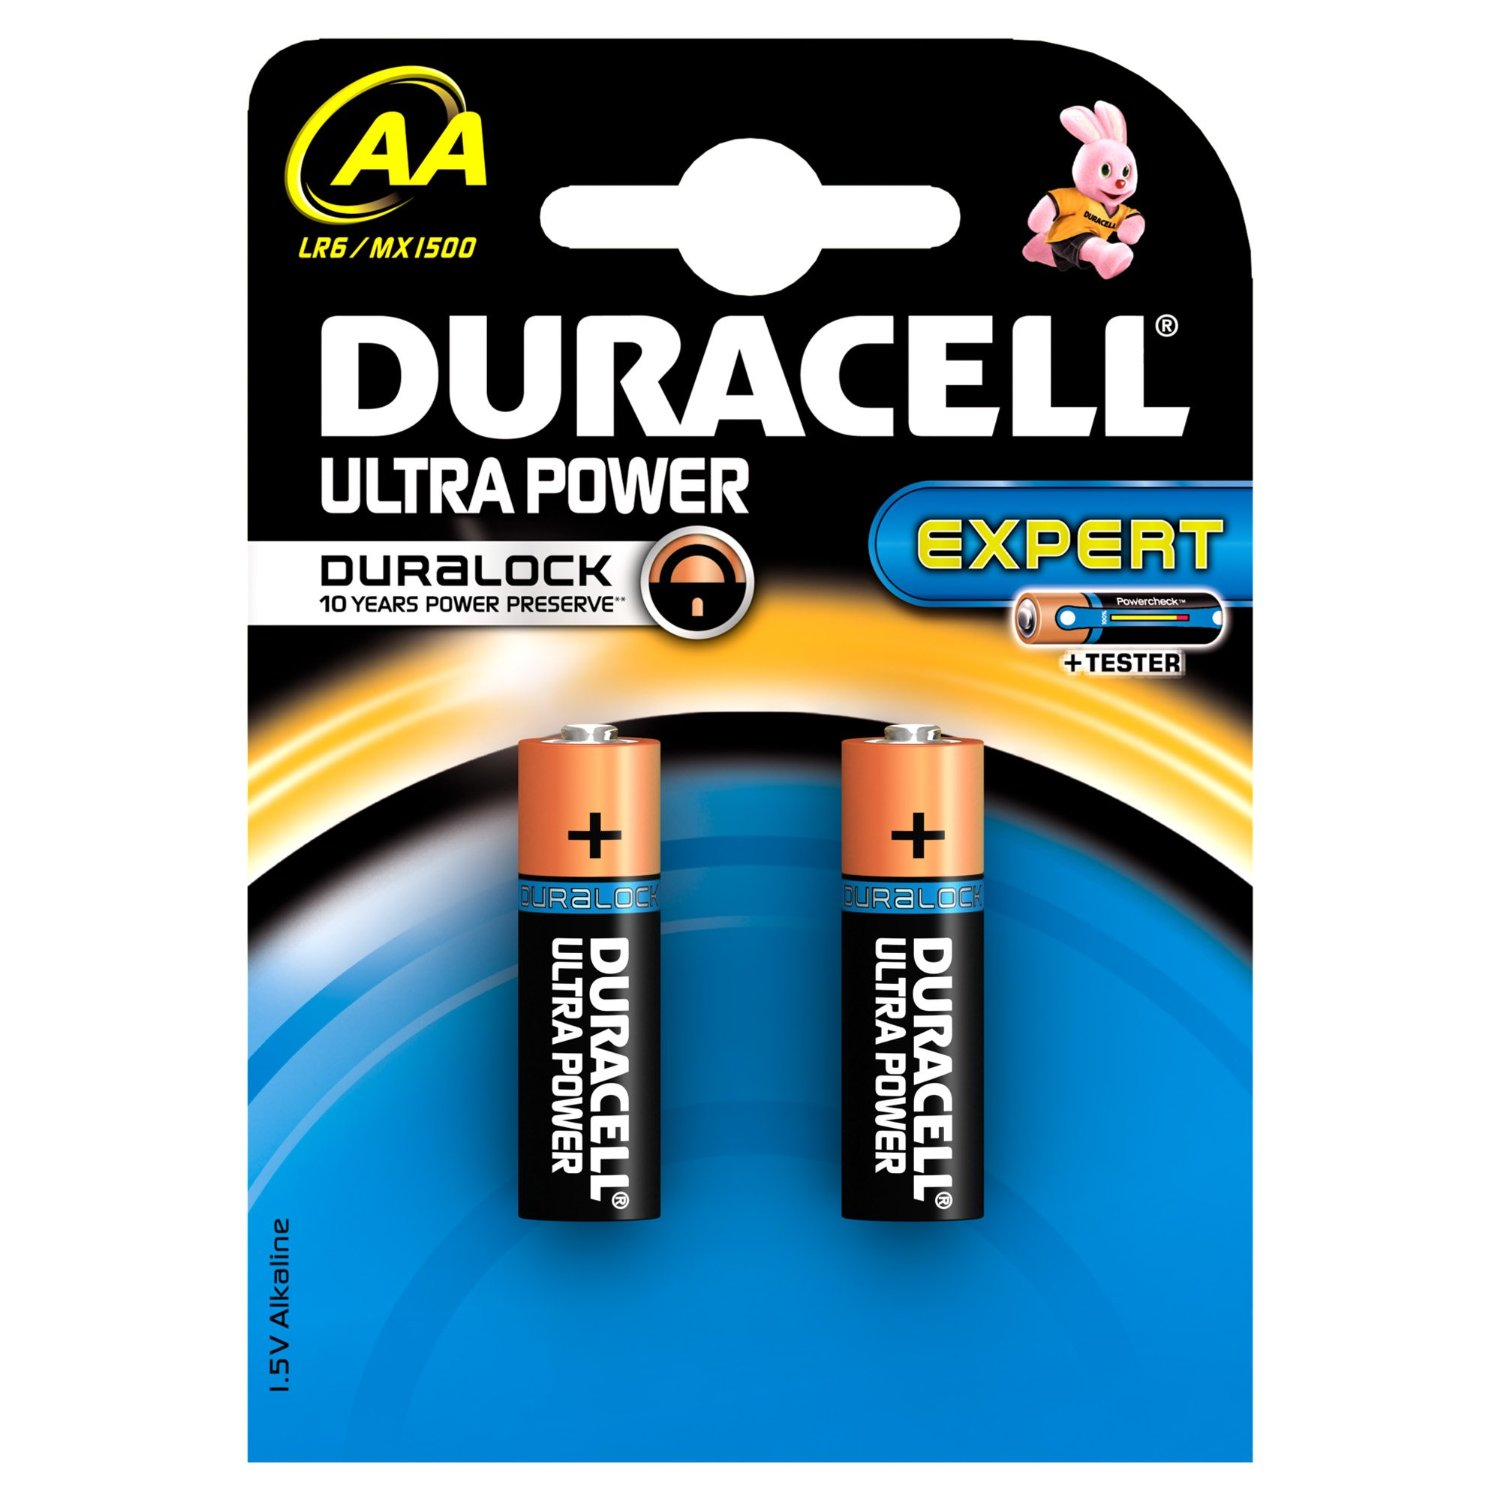 Duracell Batterie Ultra Power Expert AA 2 Pezzi